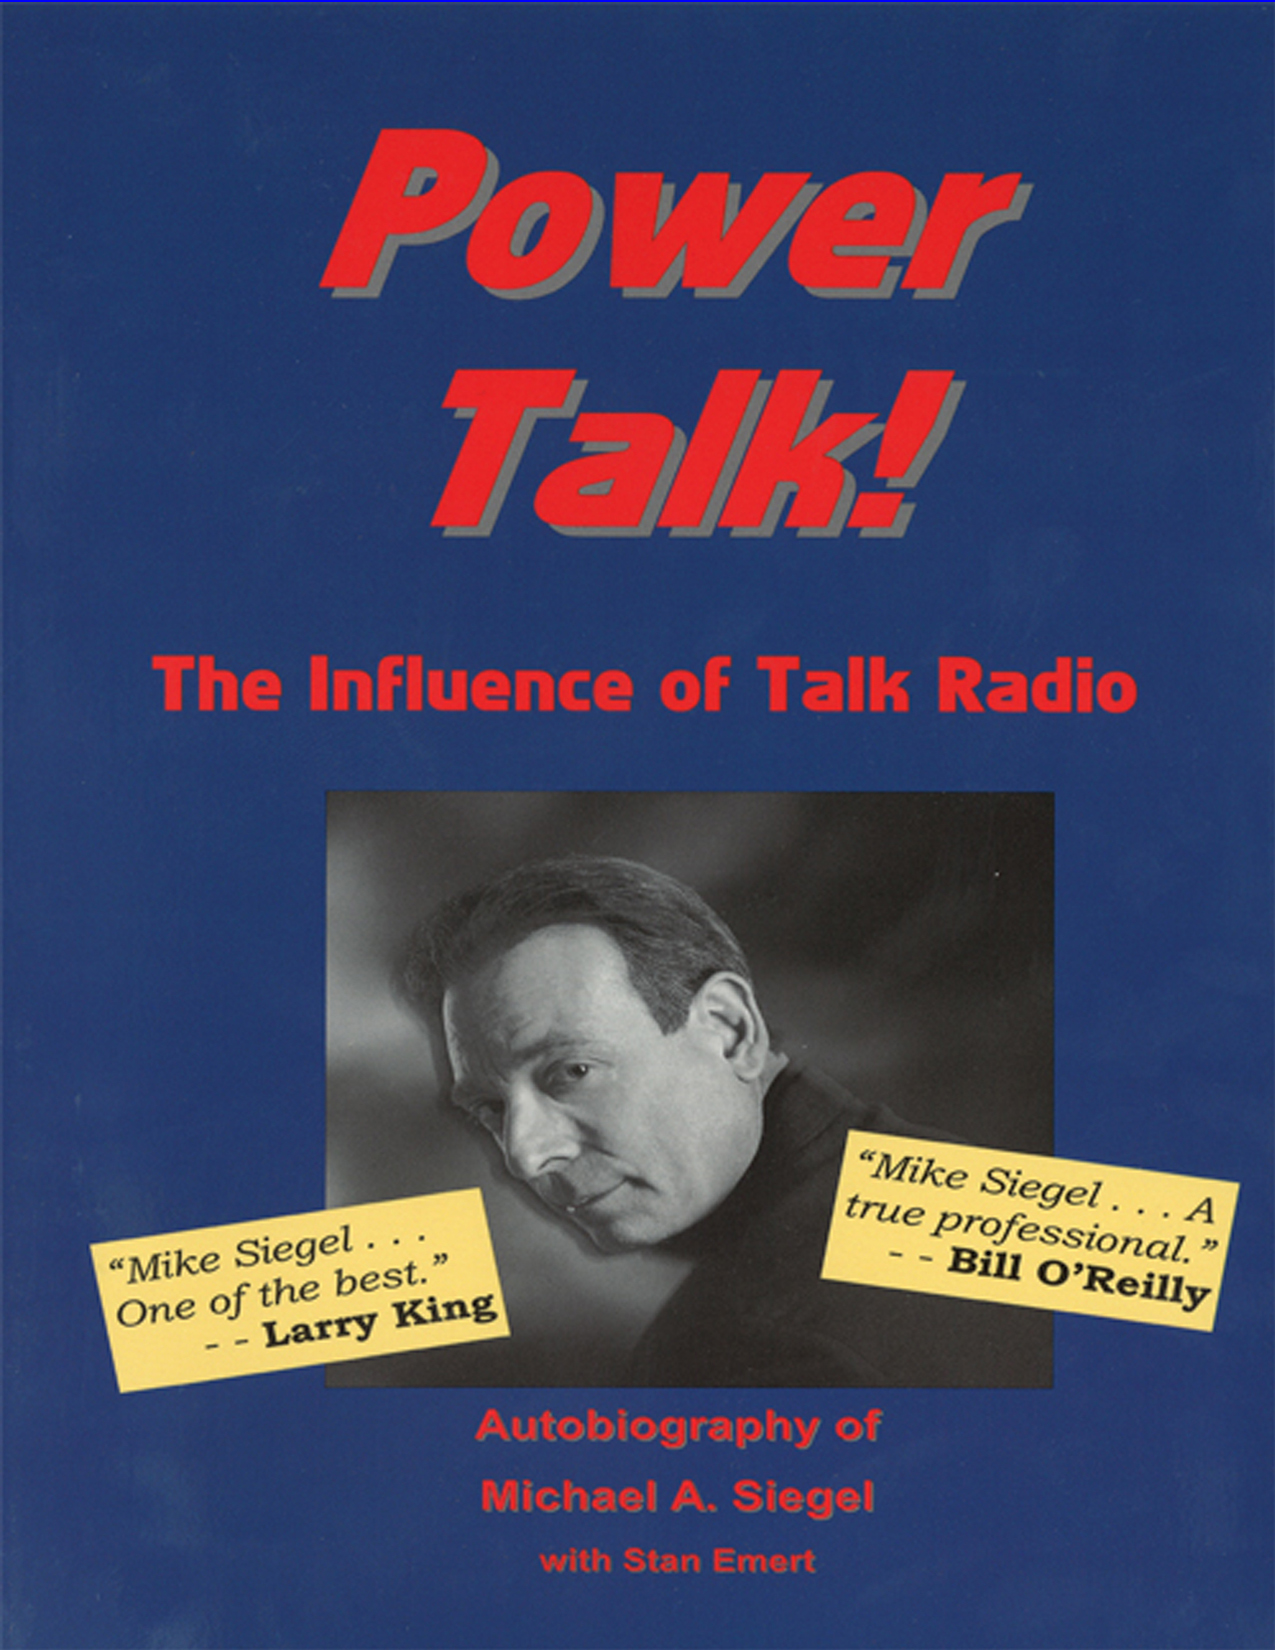 Power Talk: The Influence of Talk Radio – by Dr. Mike Siegel